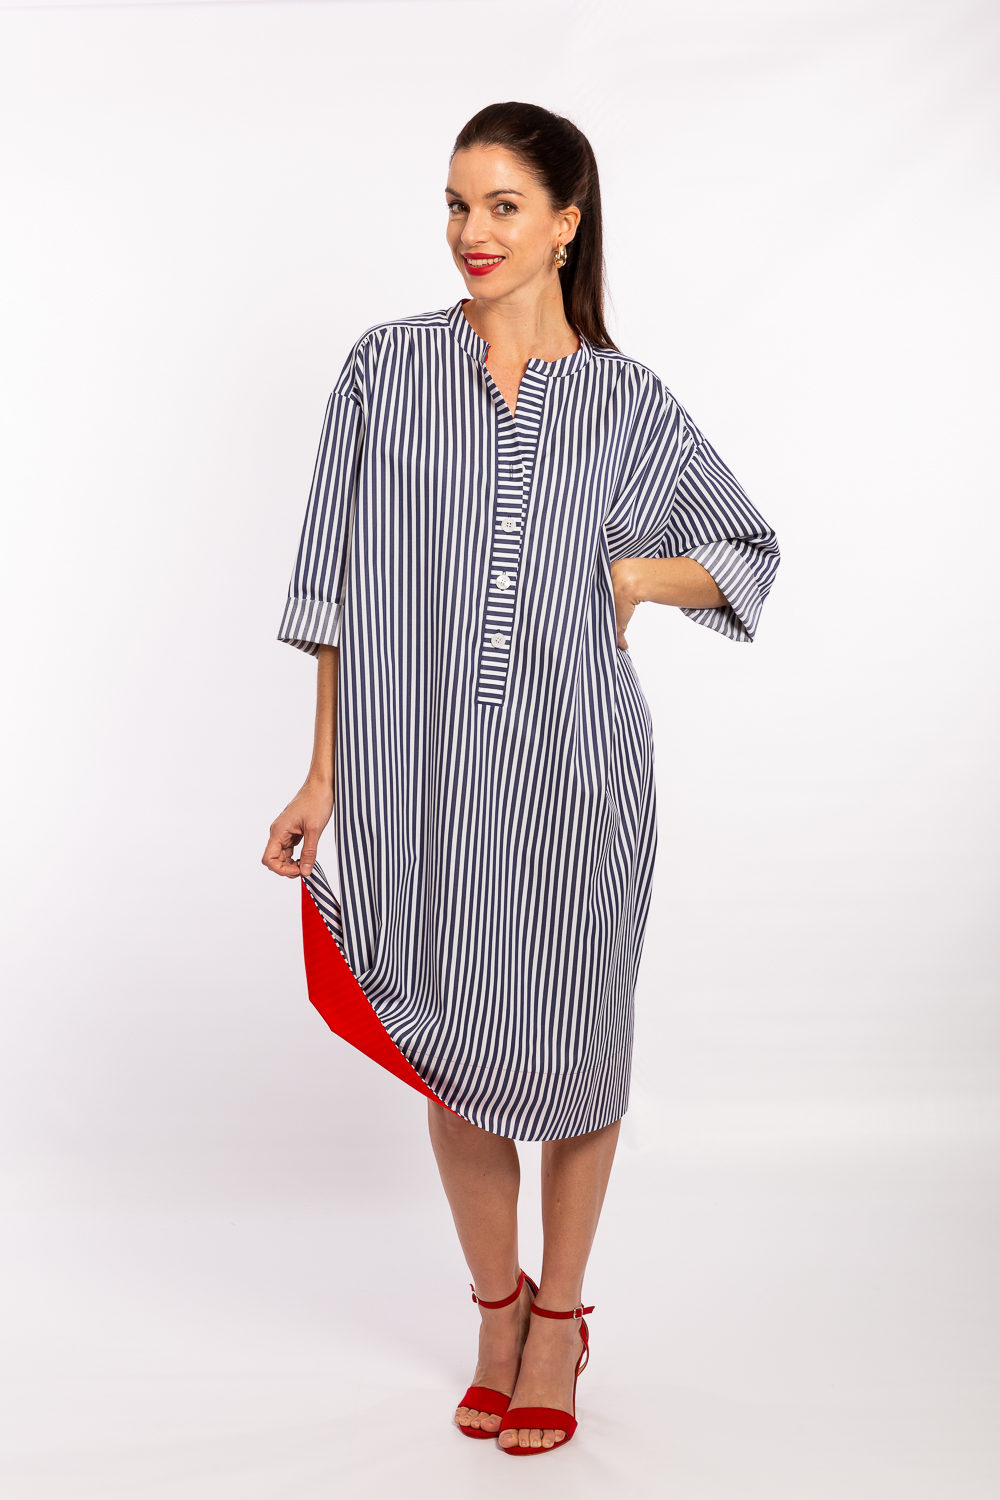 Nautical Navy & White Stripe with Red Facing